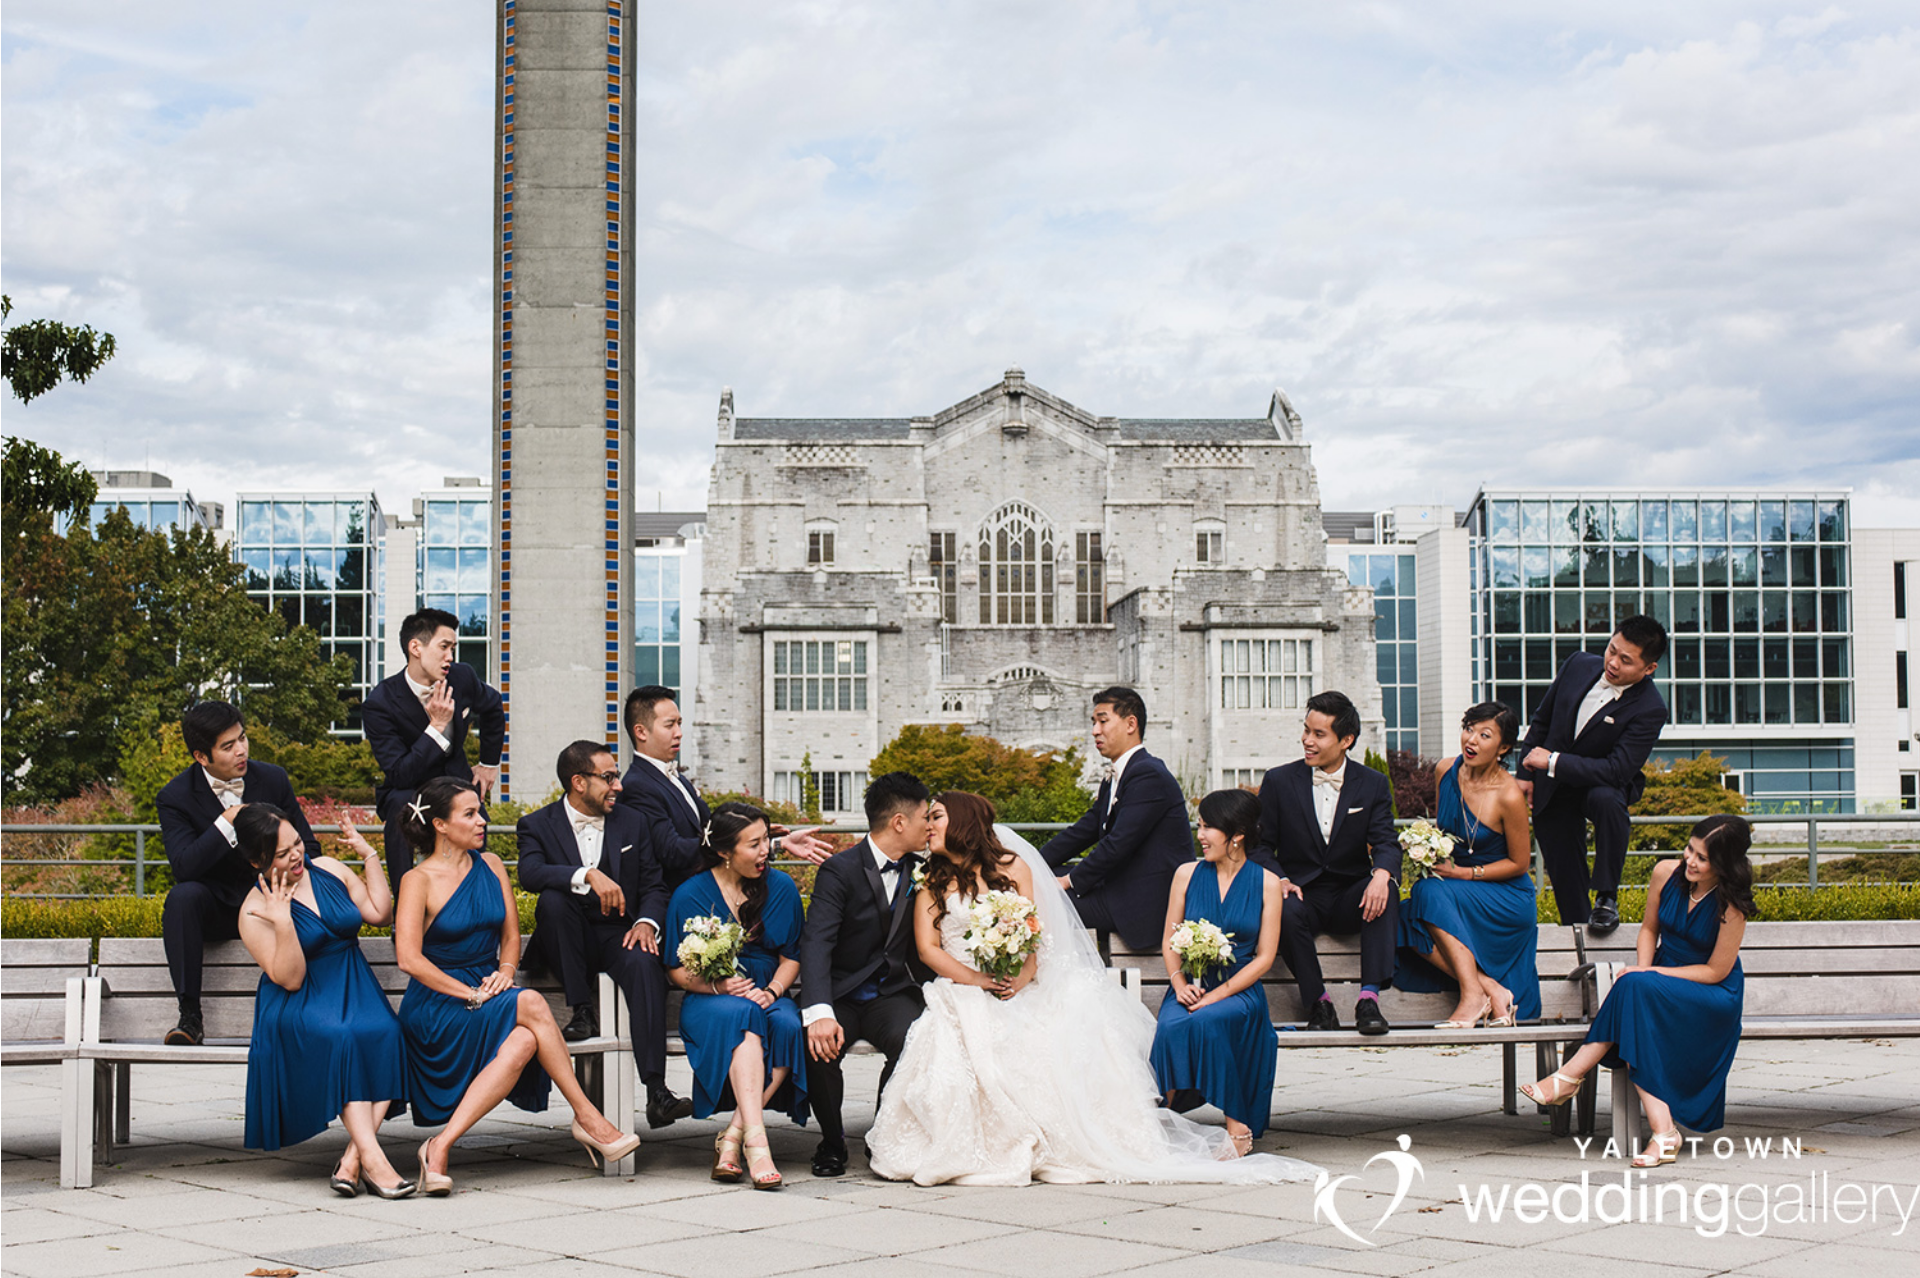 bridal-party-ubc-library-ubc-campus-yaletown-wedding-gallery-vancouver-wedding-photographers-vancouver-wedding-photo